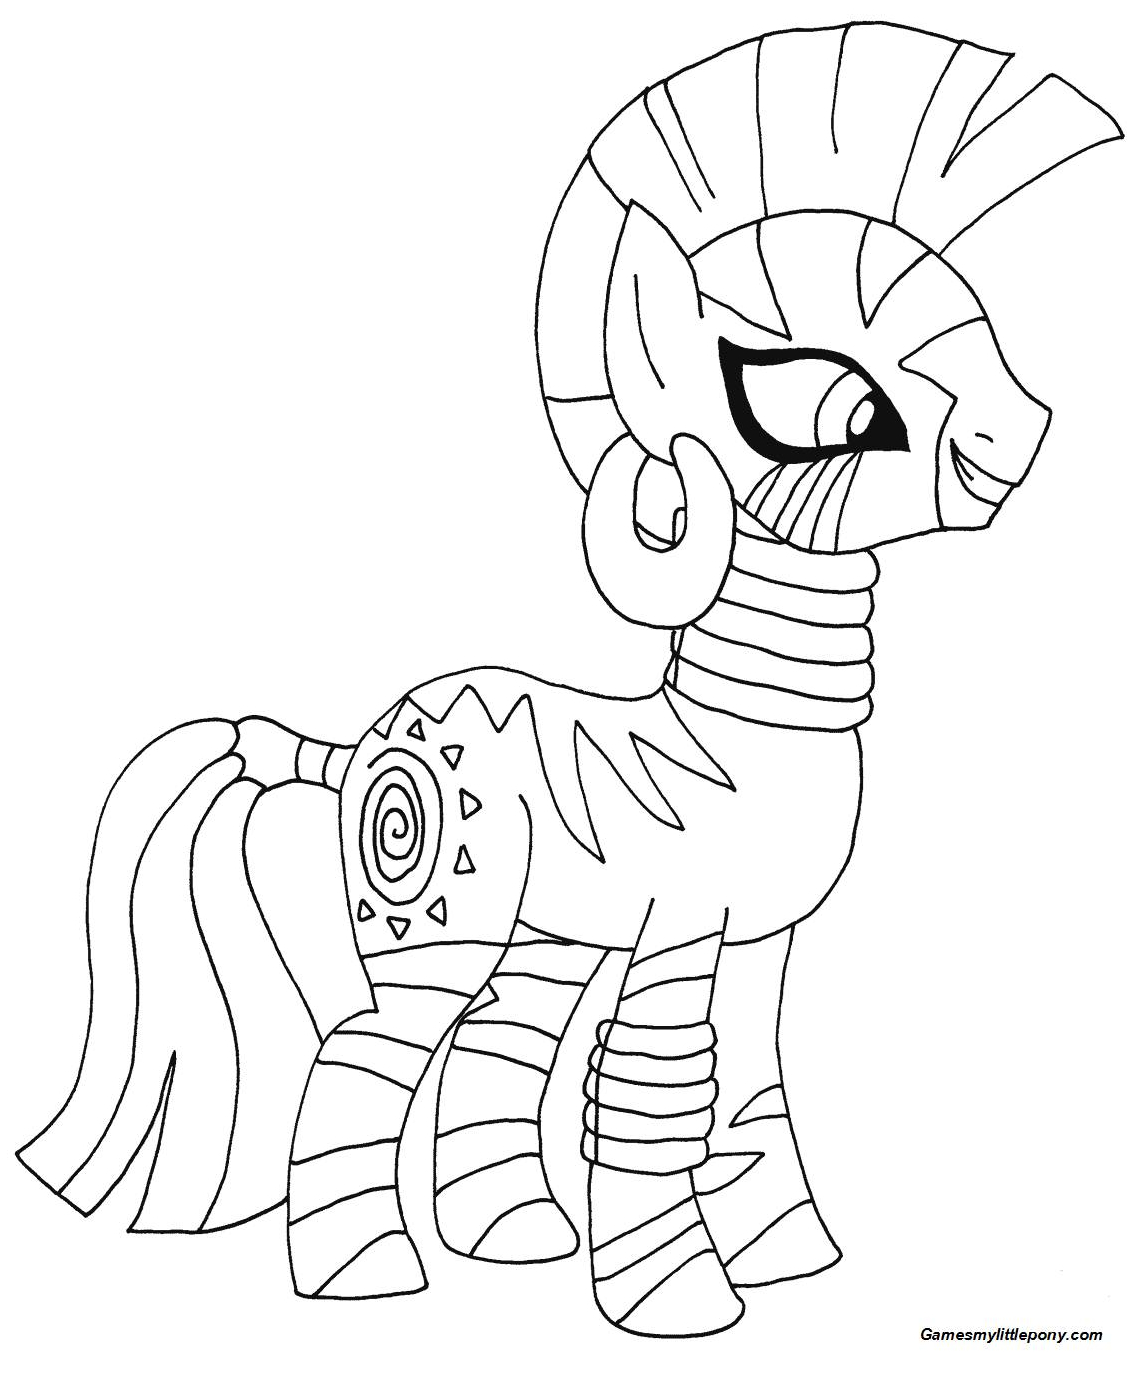 My Little Pony Zecora from My Little Pony